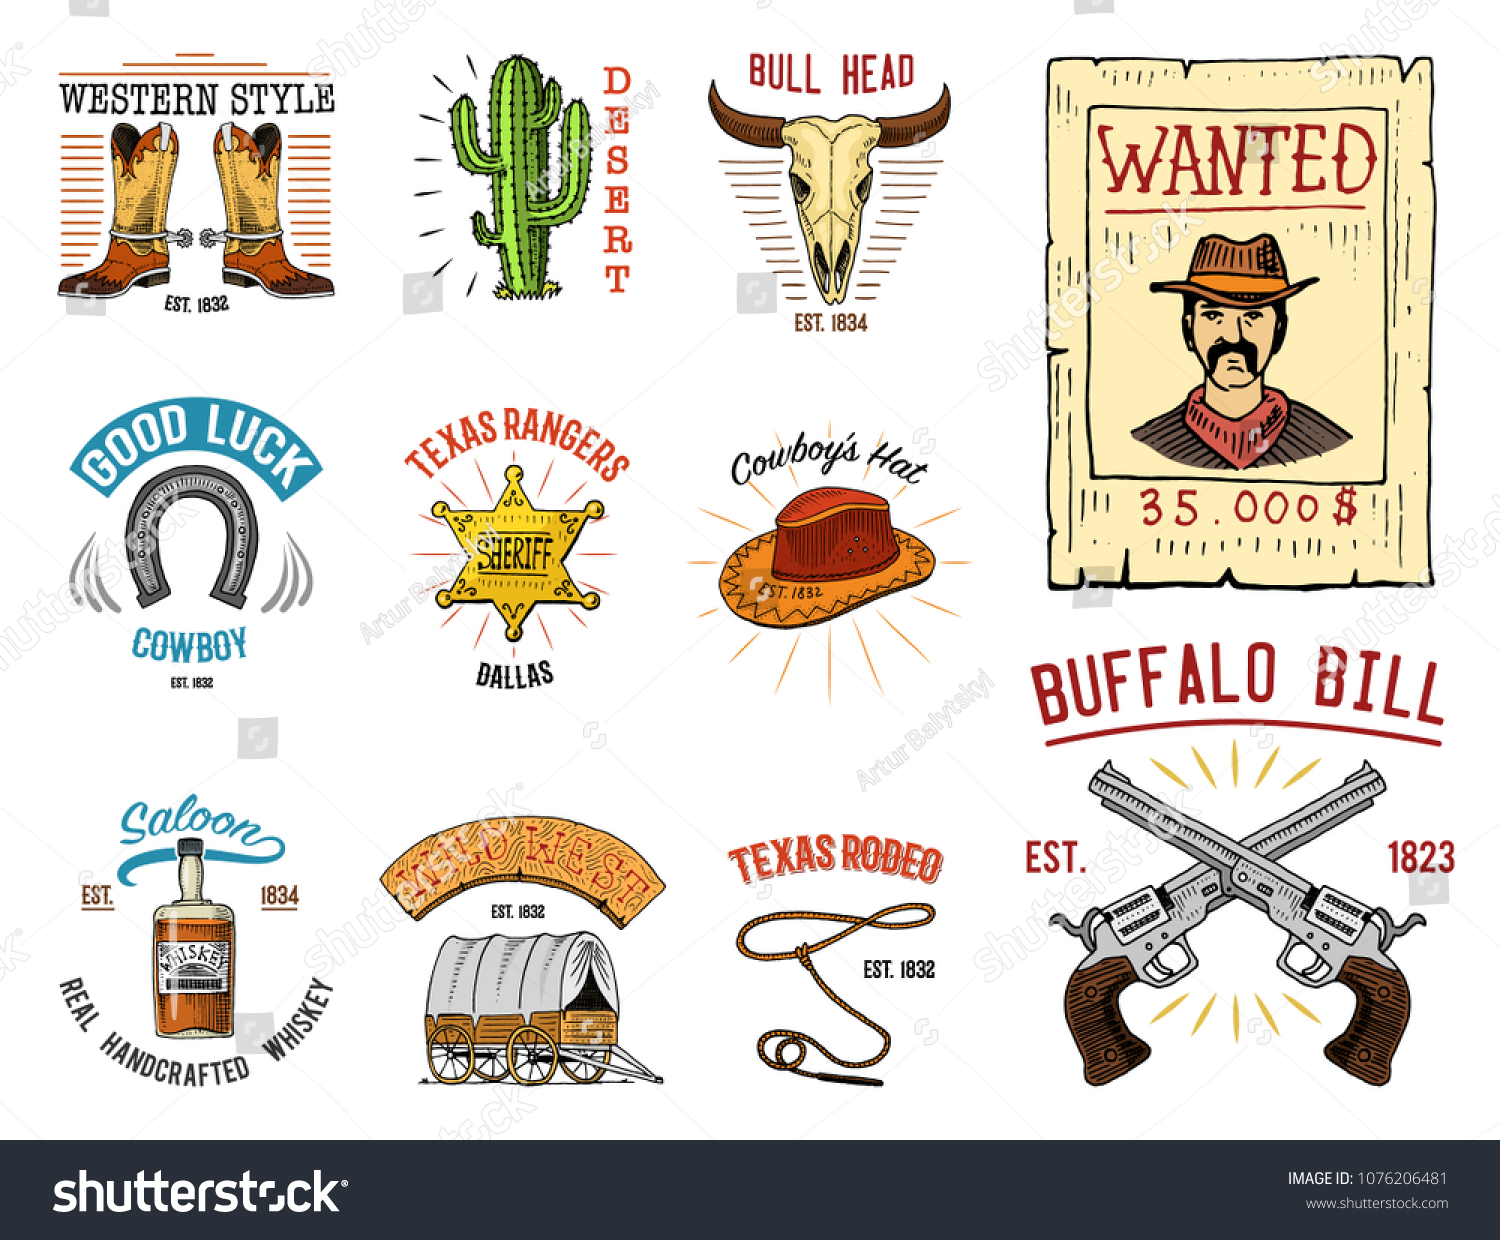 Cowboy Set Badges Wild West Rodeo Stock Vector (Royalty Free ... ecd377d7c